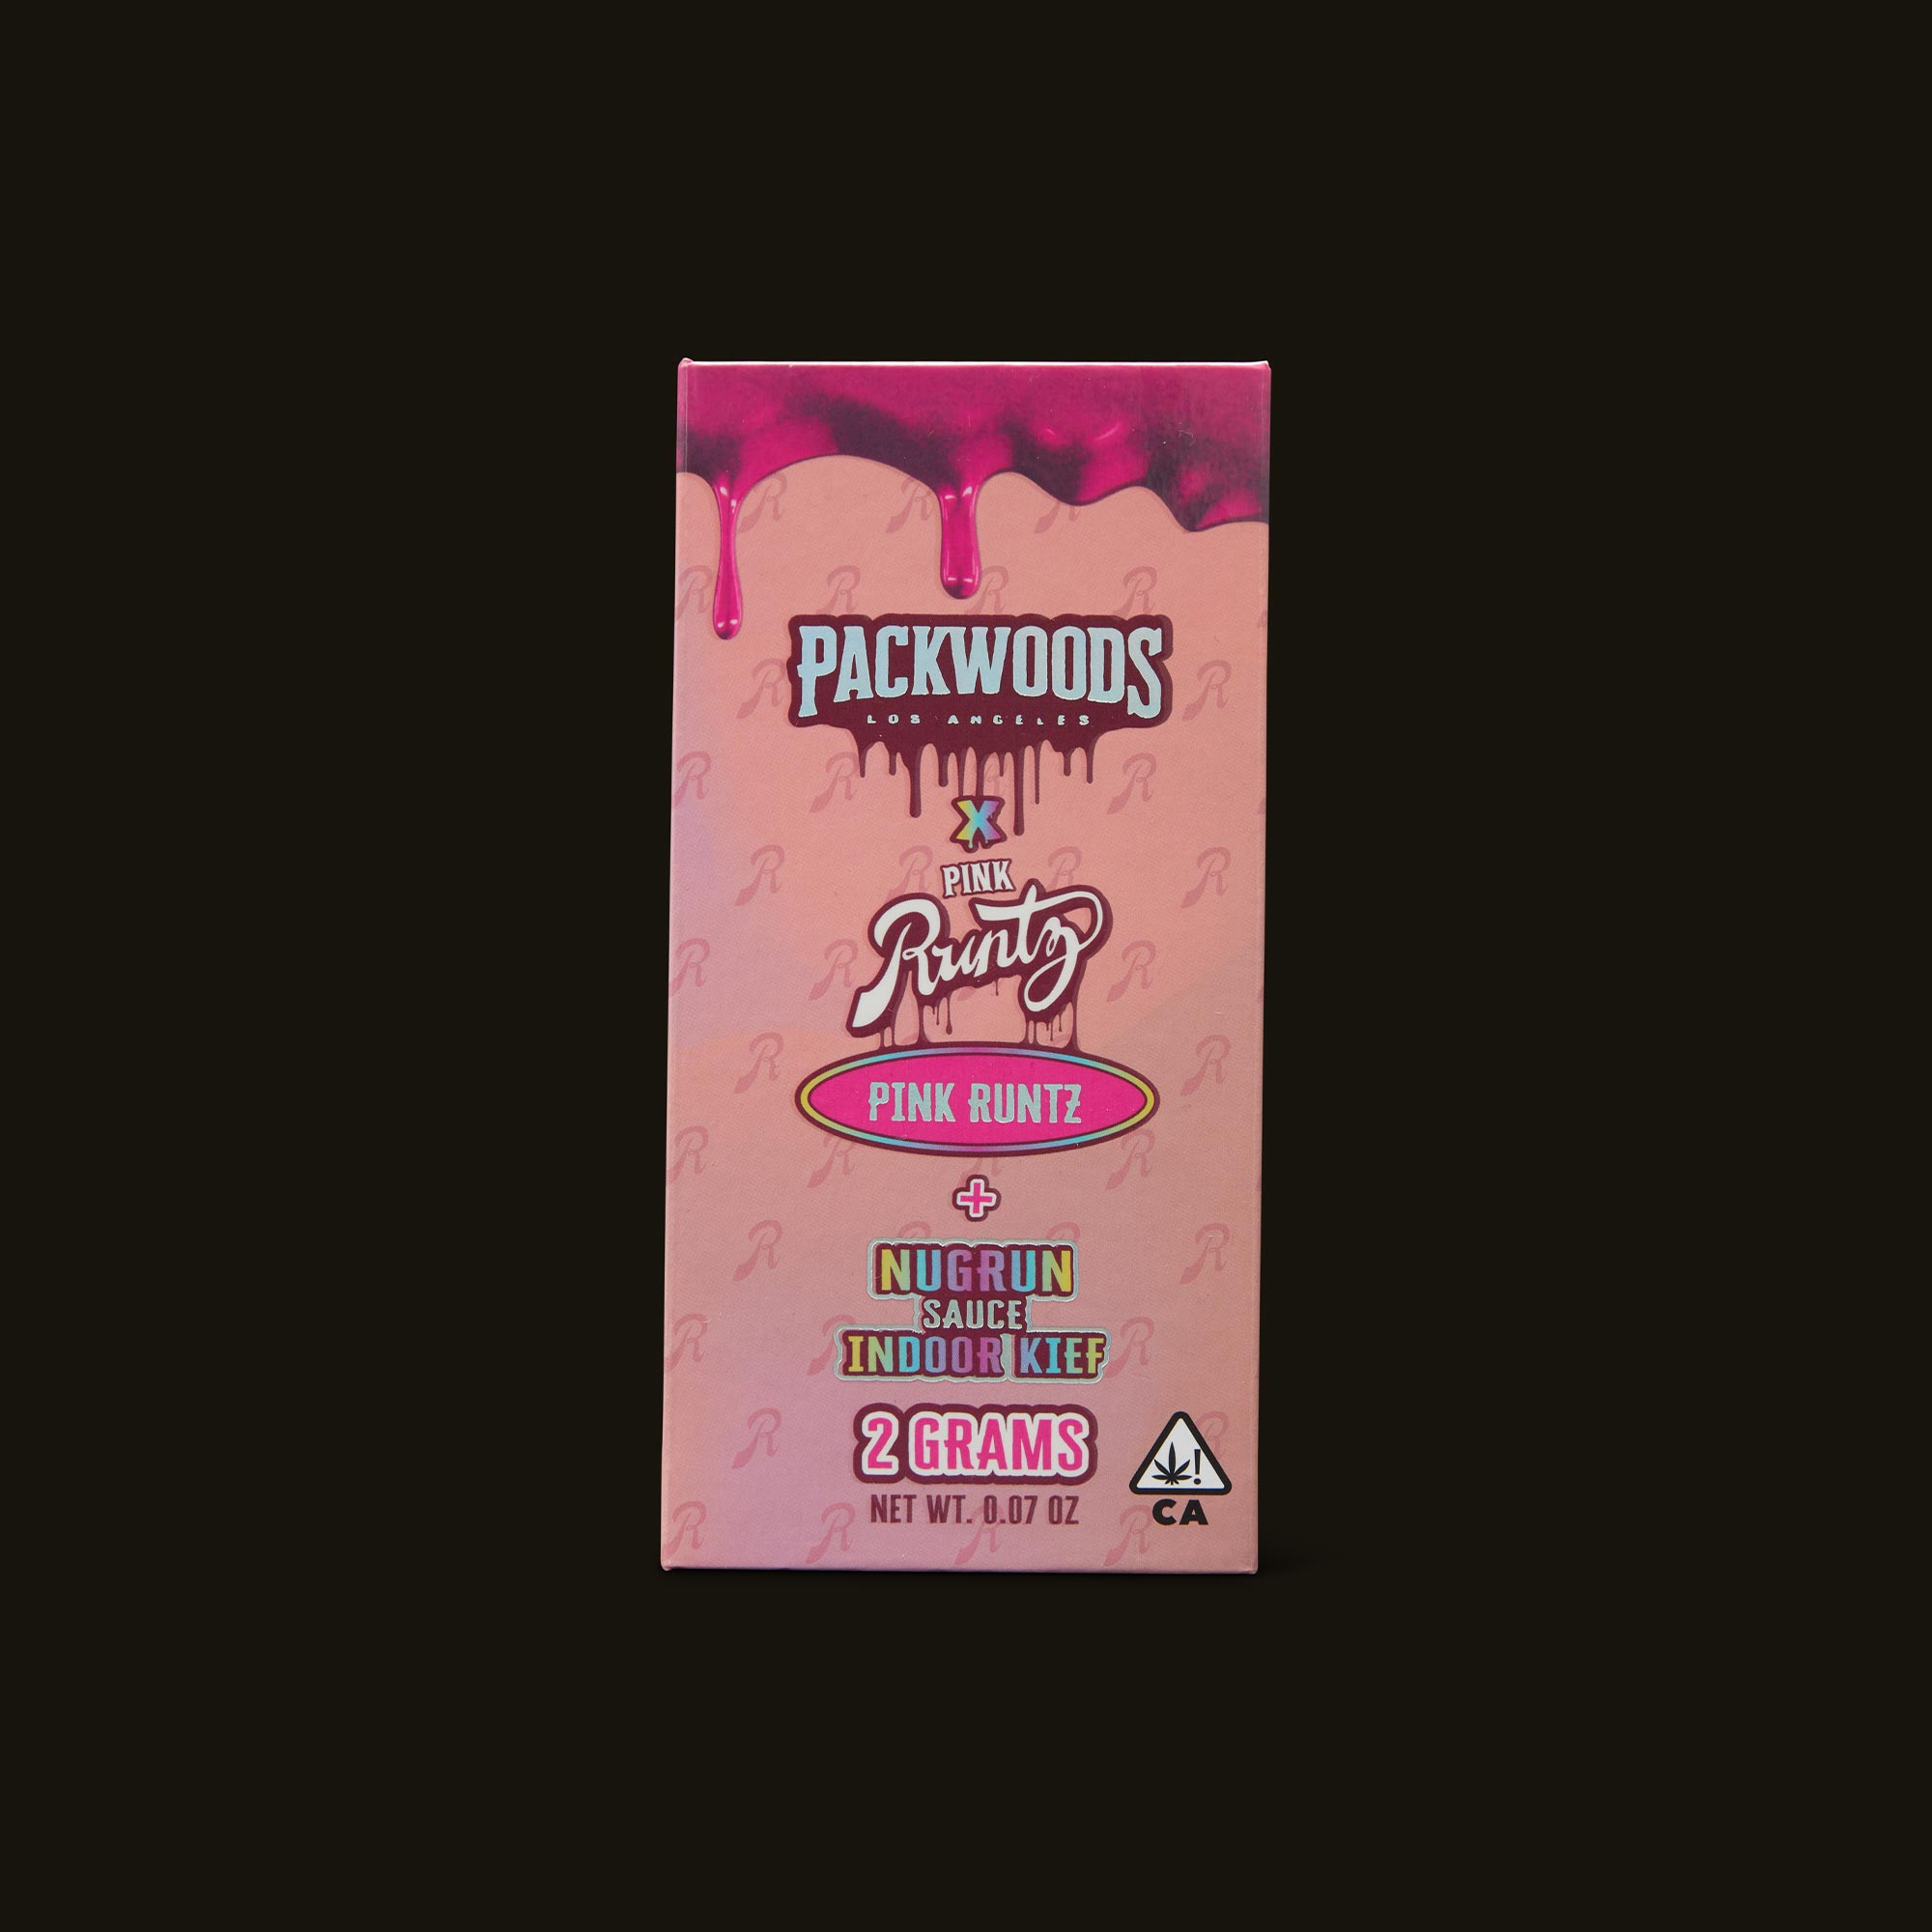 Packwoods Pink Runtz Pre-Roll Front Packaging